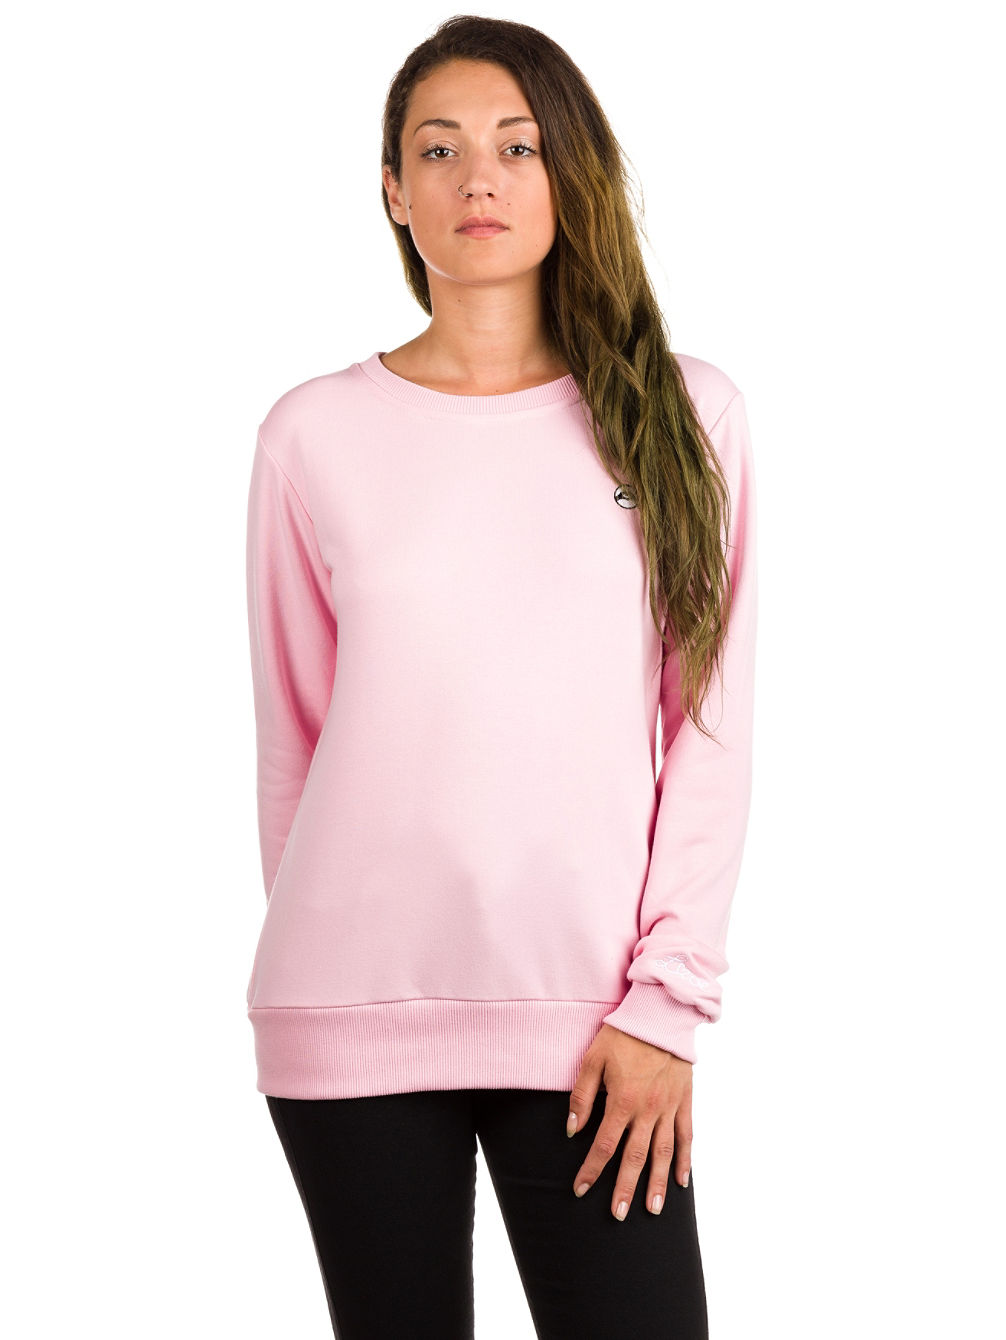 Zuckerl Sweater